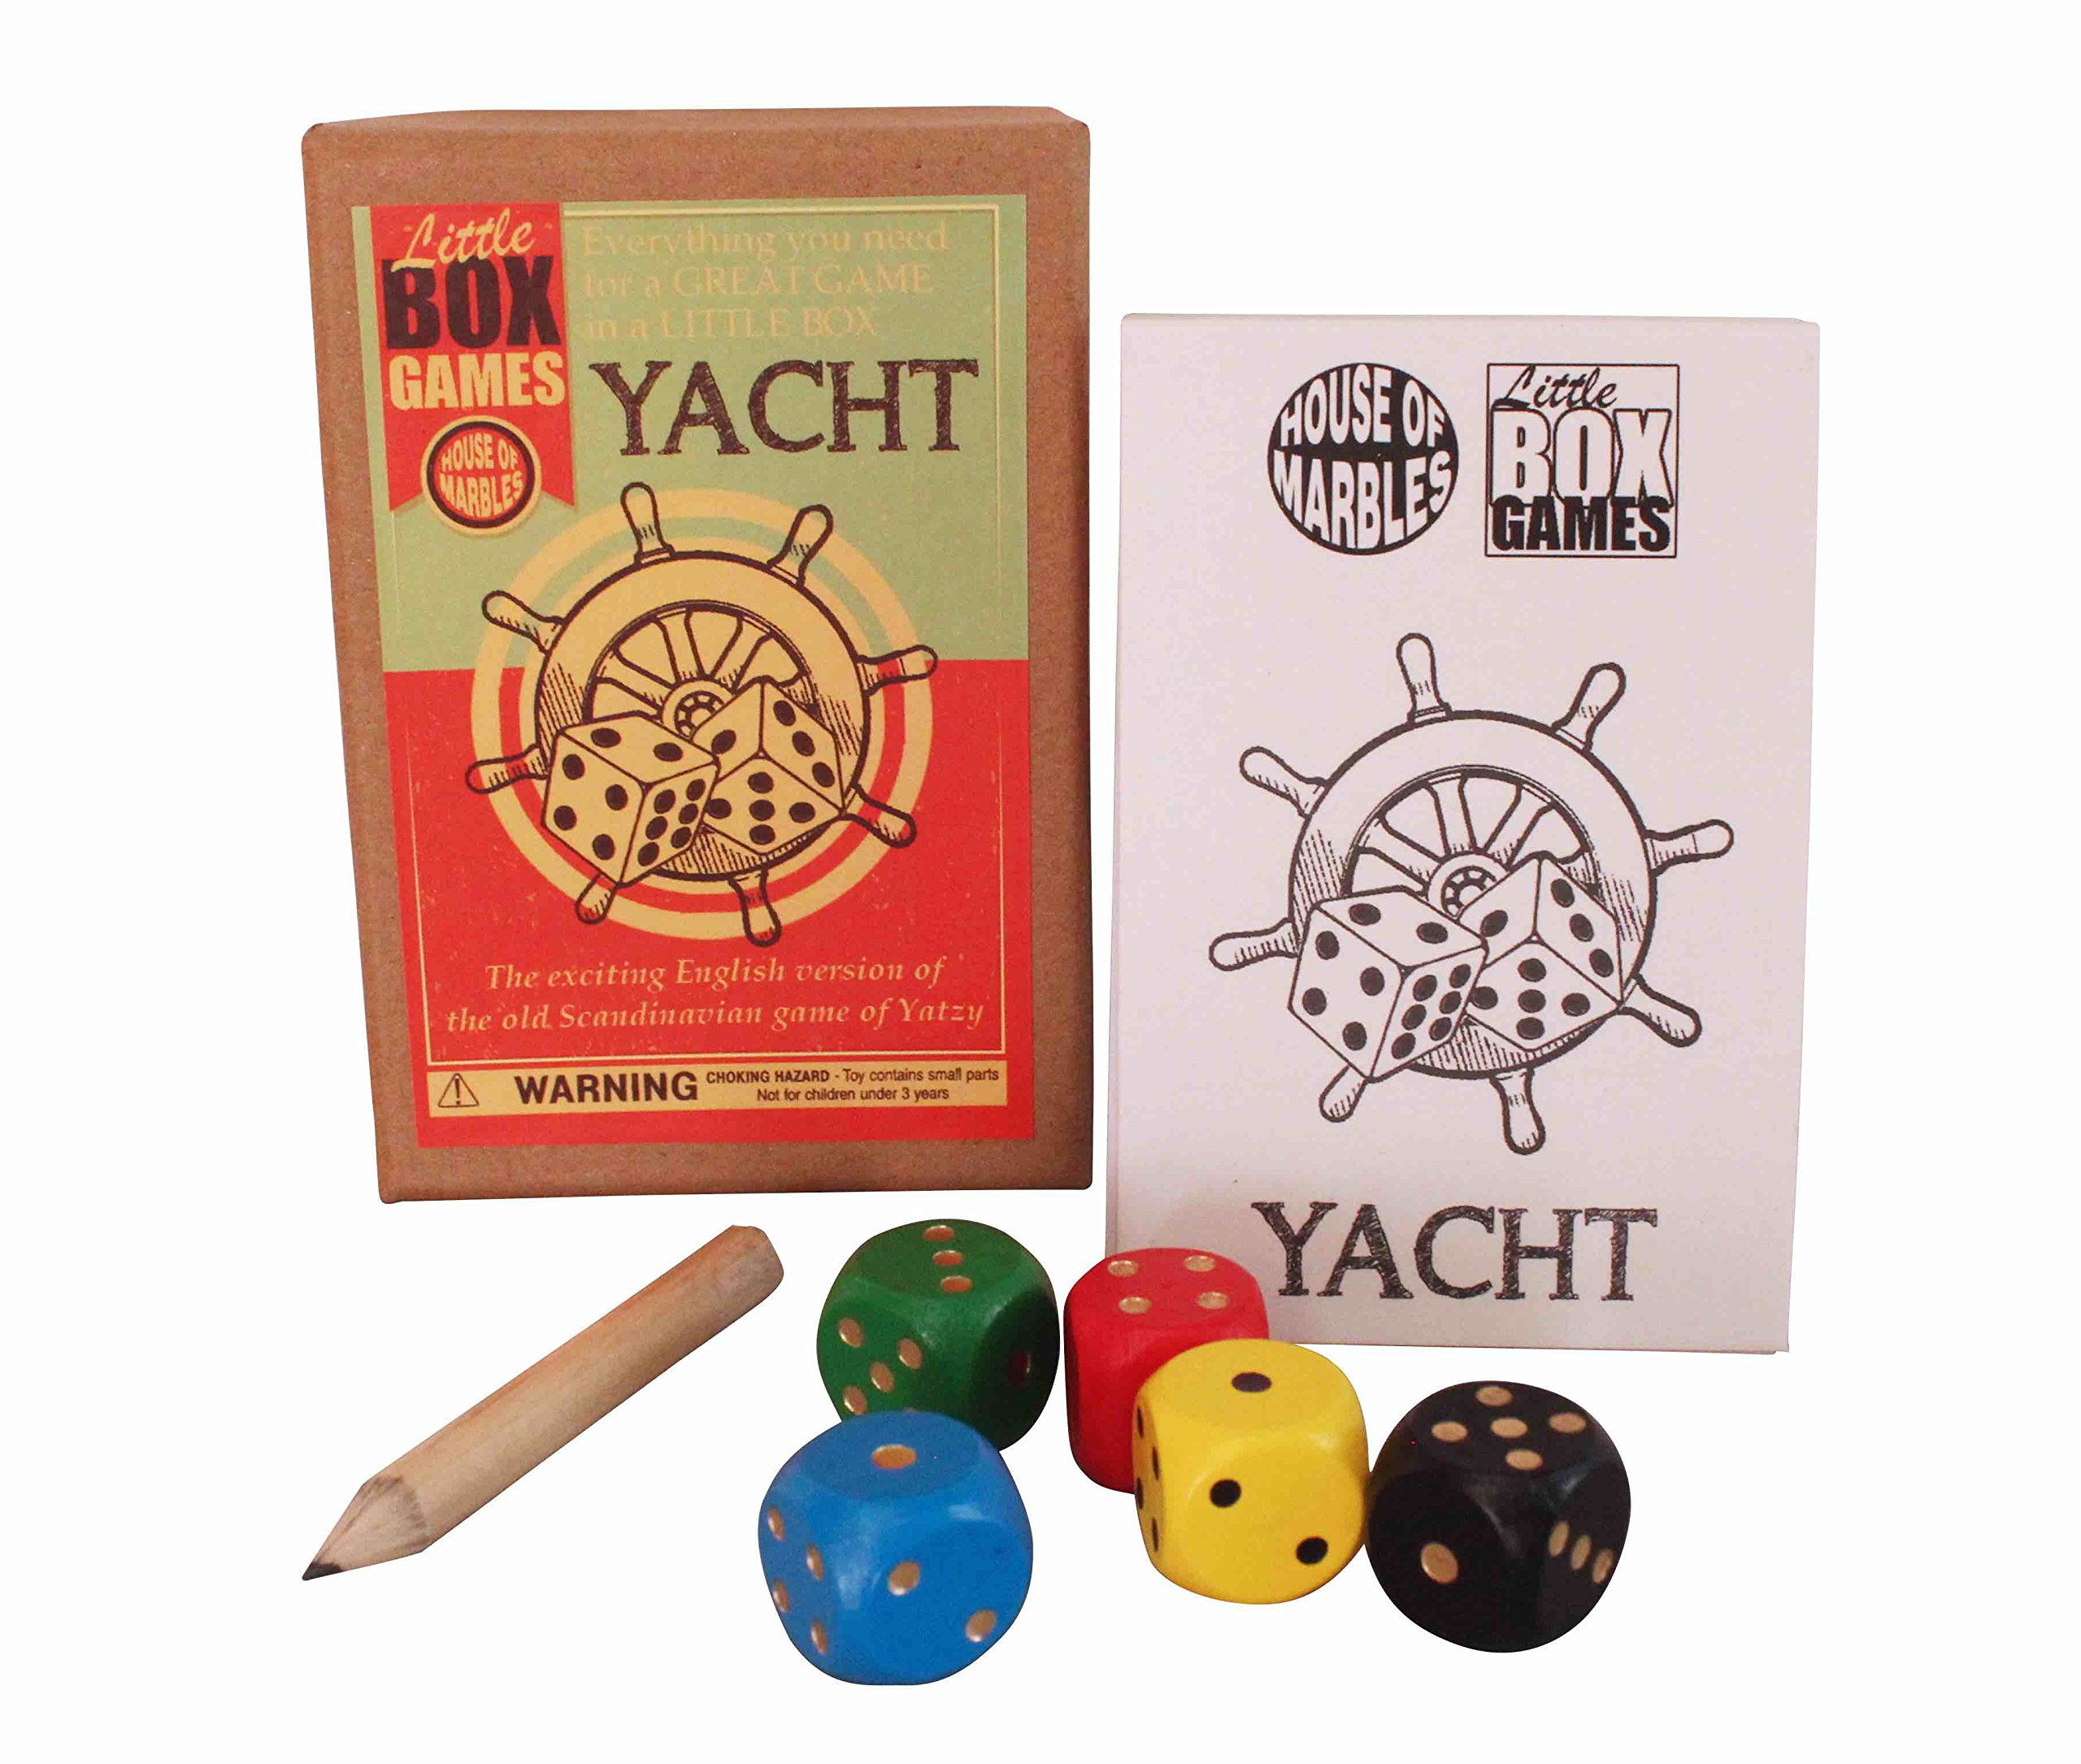 House of Marbles Little Box Game - Yacht - Vintage Toys for Kids and Adults